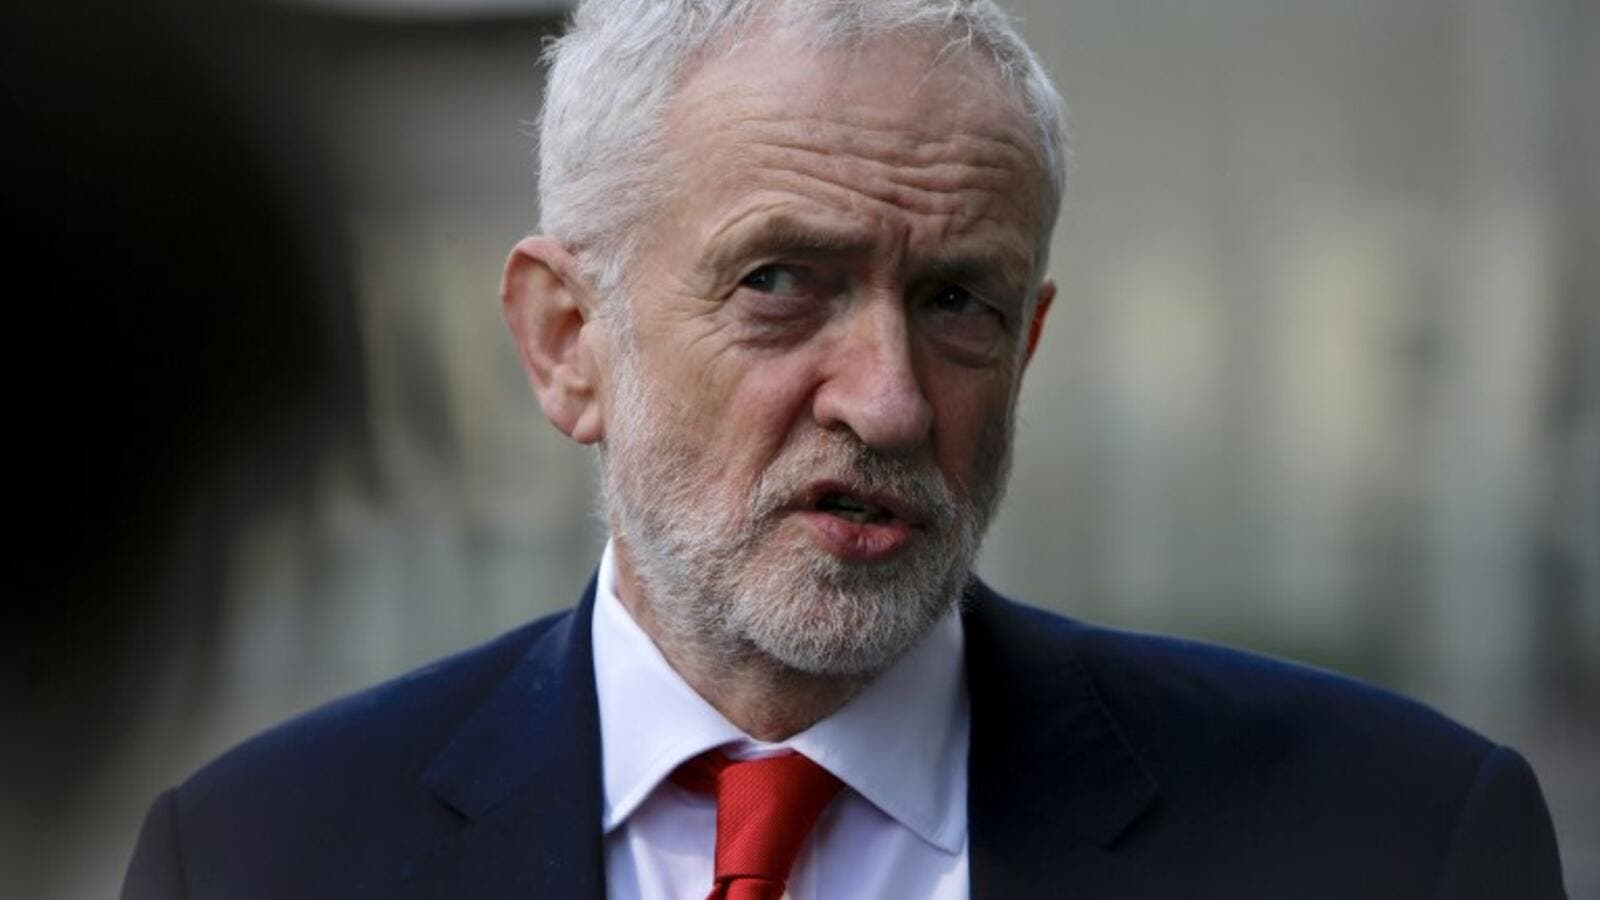 Britain's opposition Labour party leader Jeremy Corbyn (AFP)